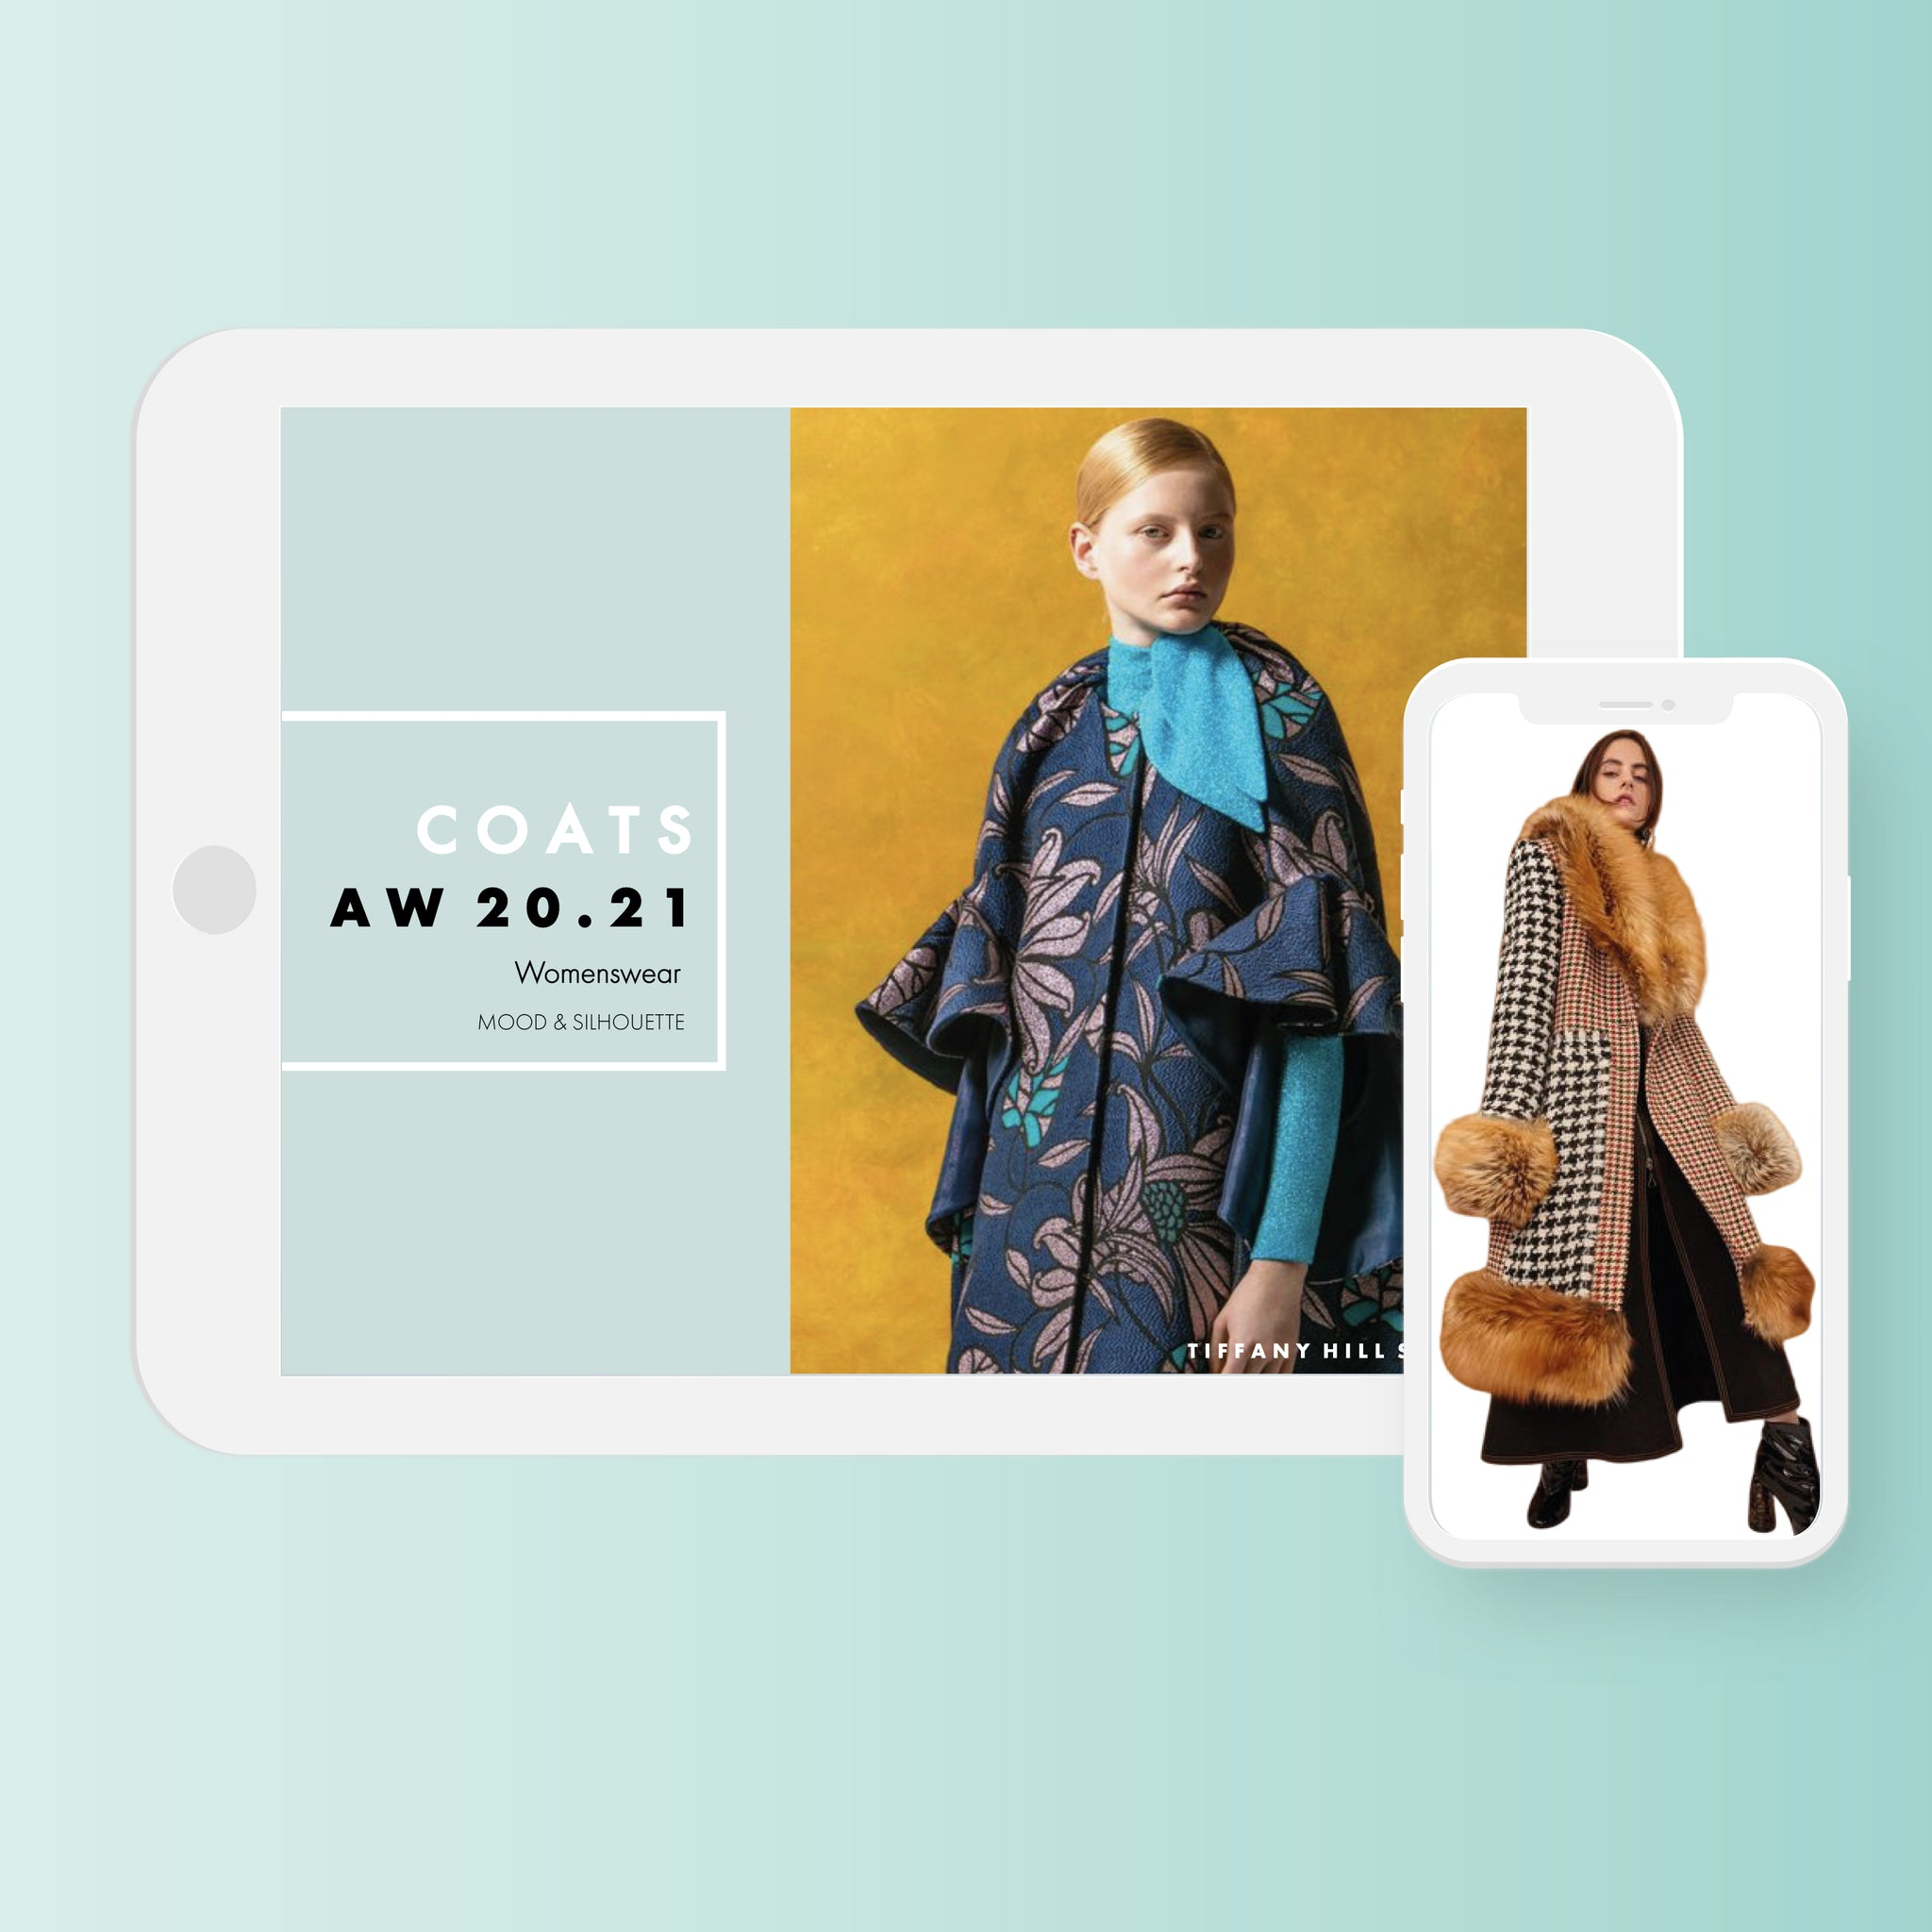 AW20.21 WOMENSWEAR COATS FORECAST